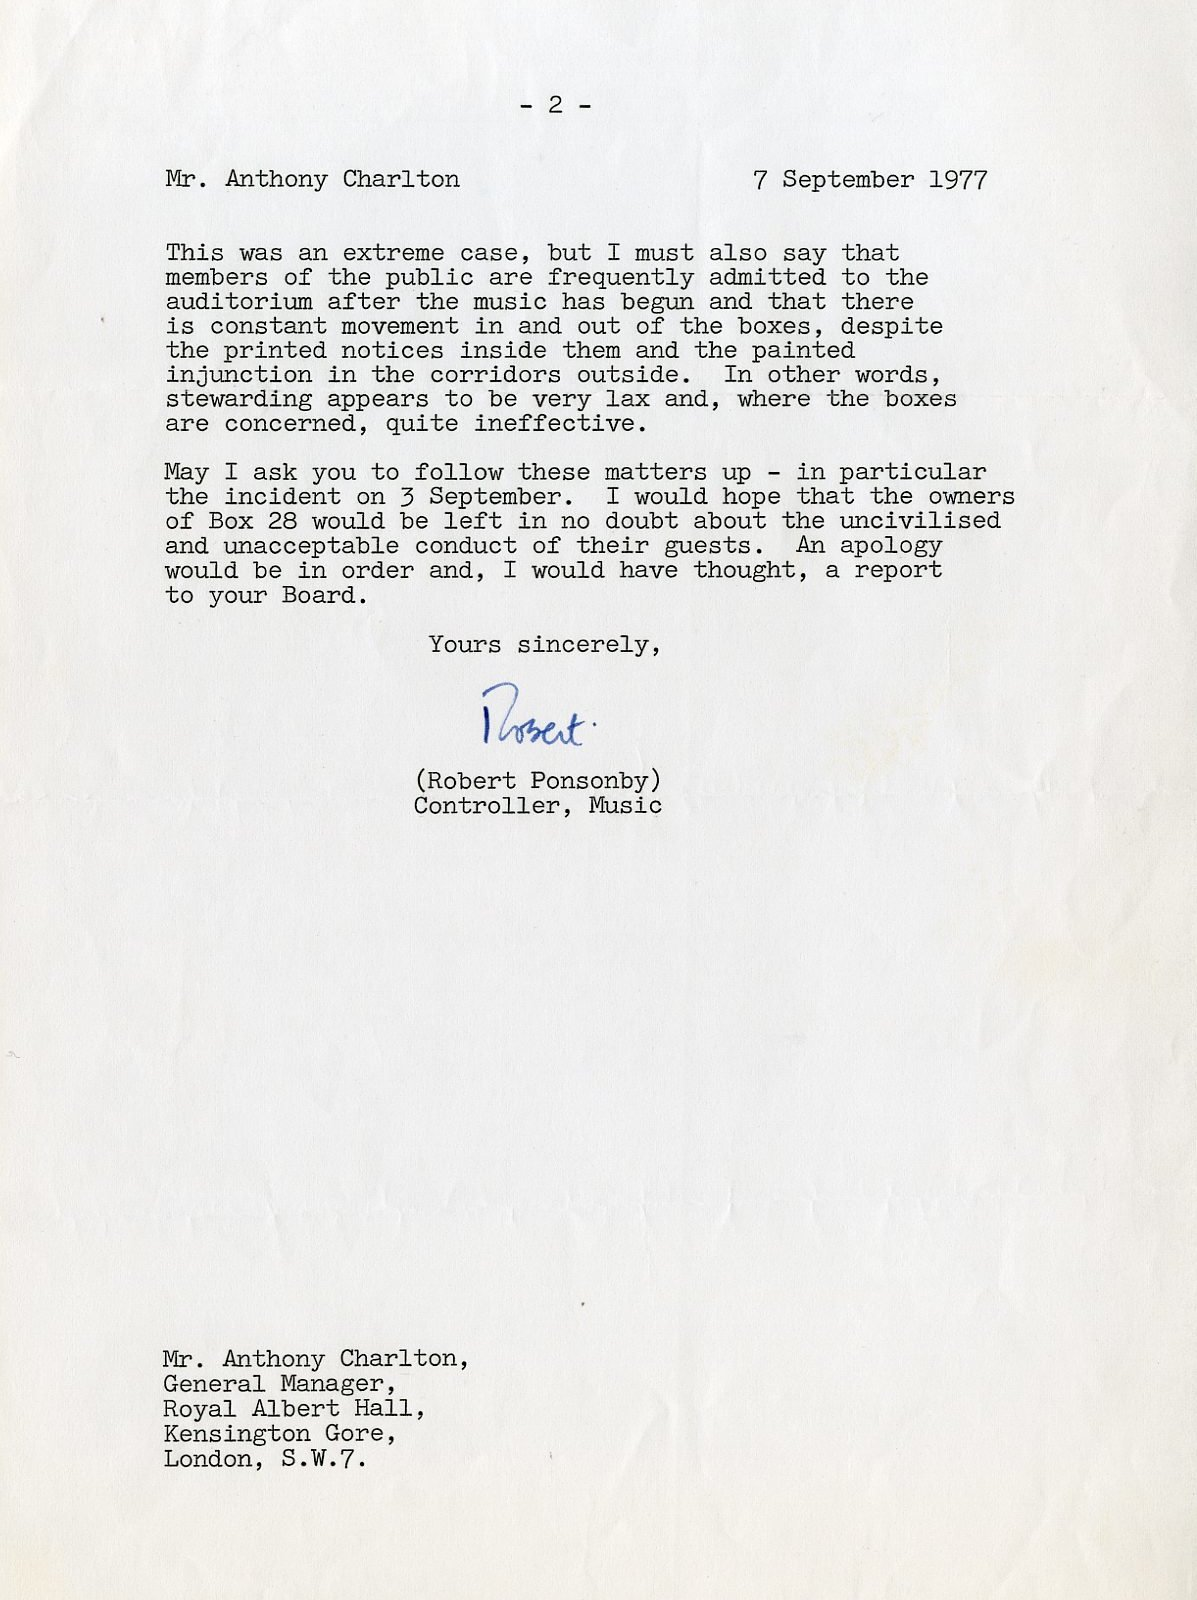 Letter from BBC to Royal Albert Hall